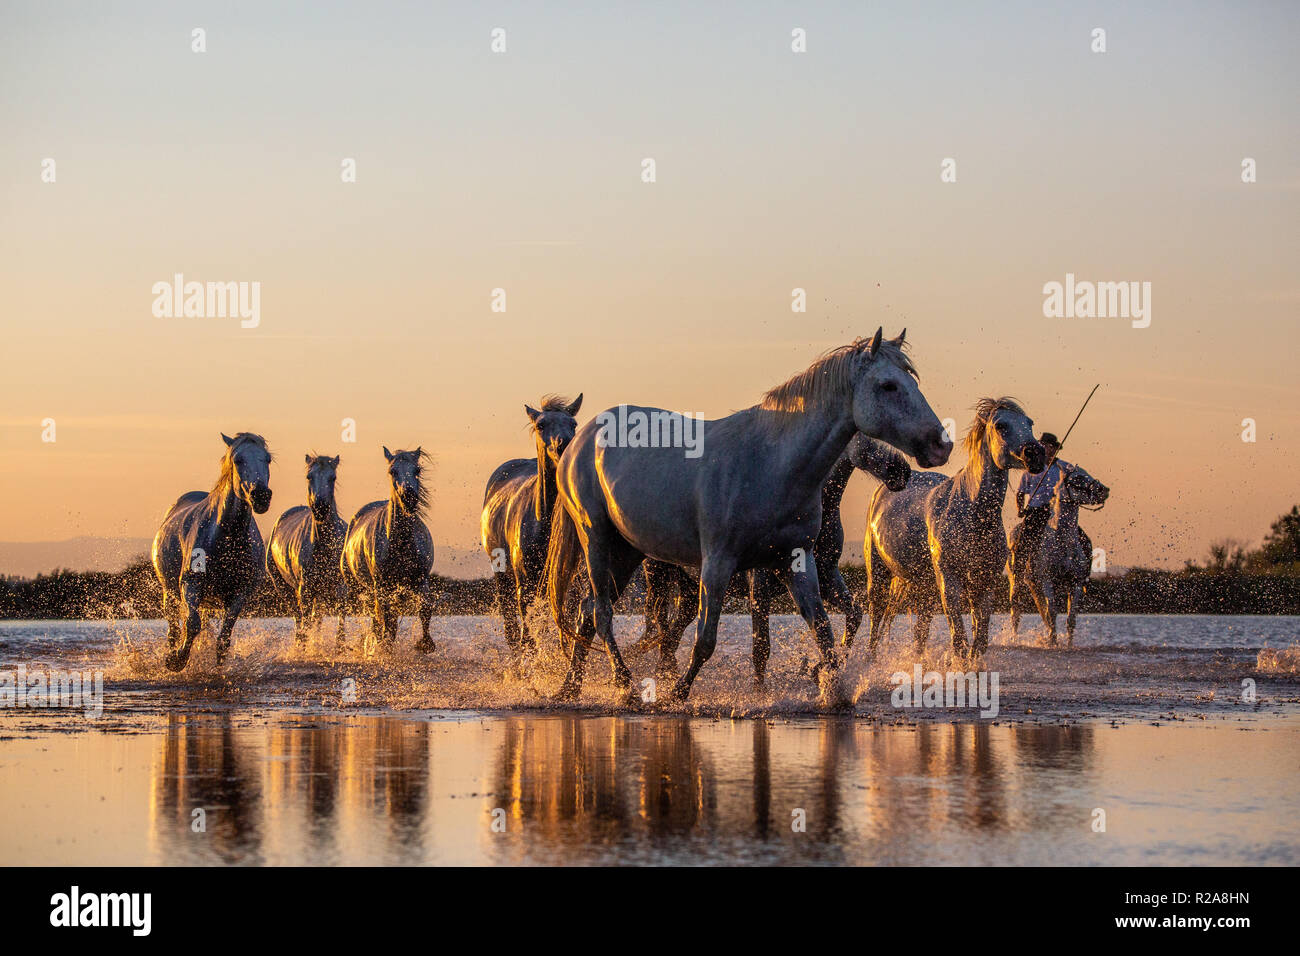 White Wild Horses Of Camargue Running At Sunset On Water Aigues Mortes Southern France Stock Photo Alamy